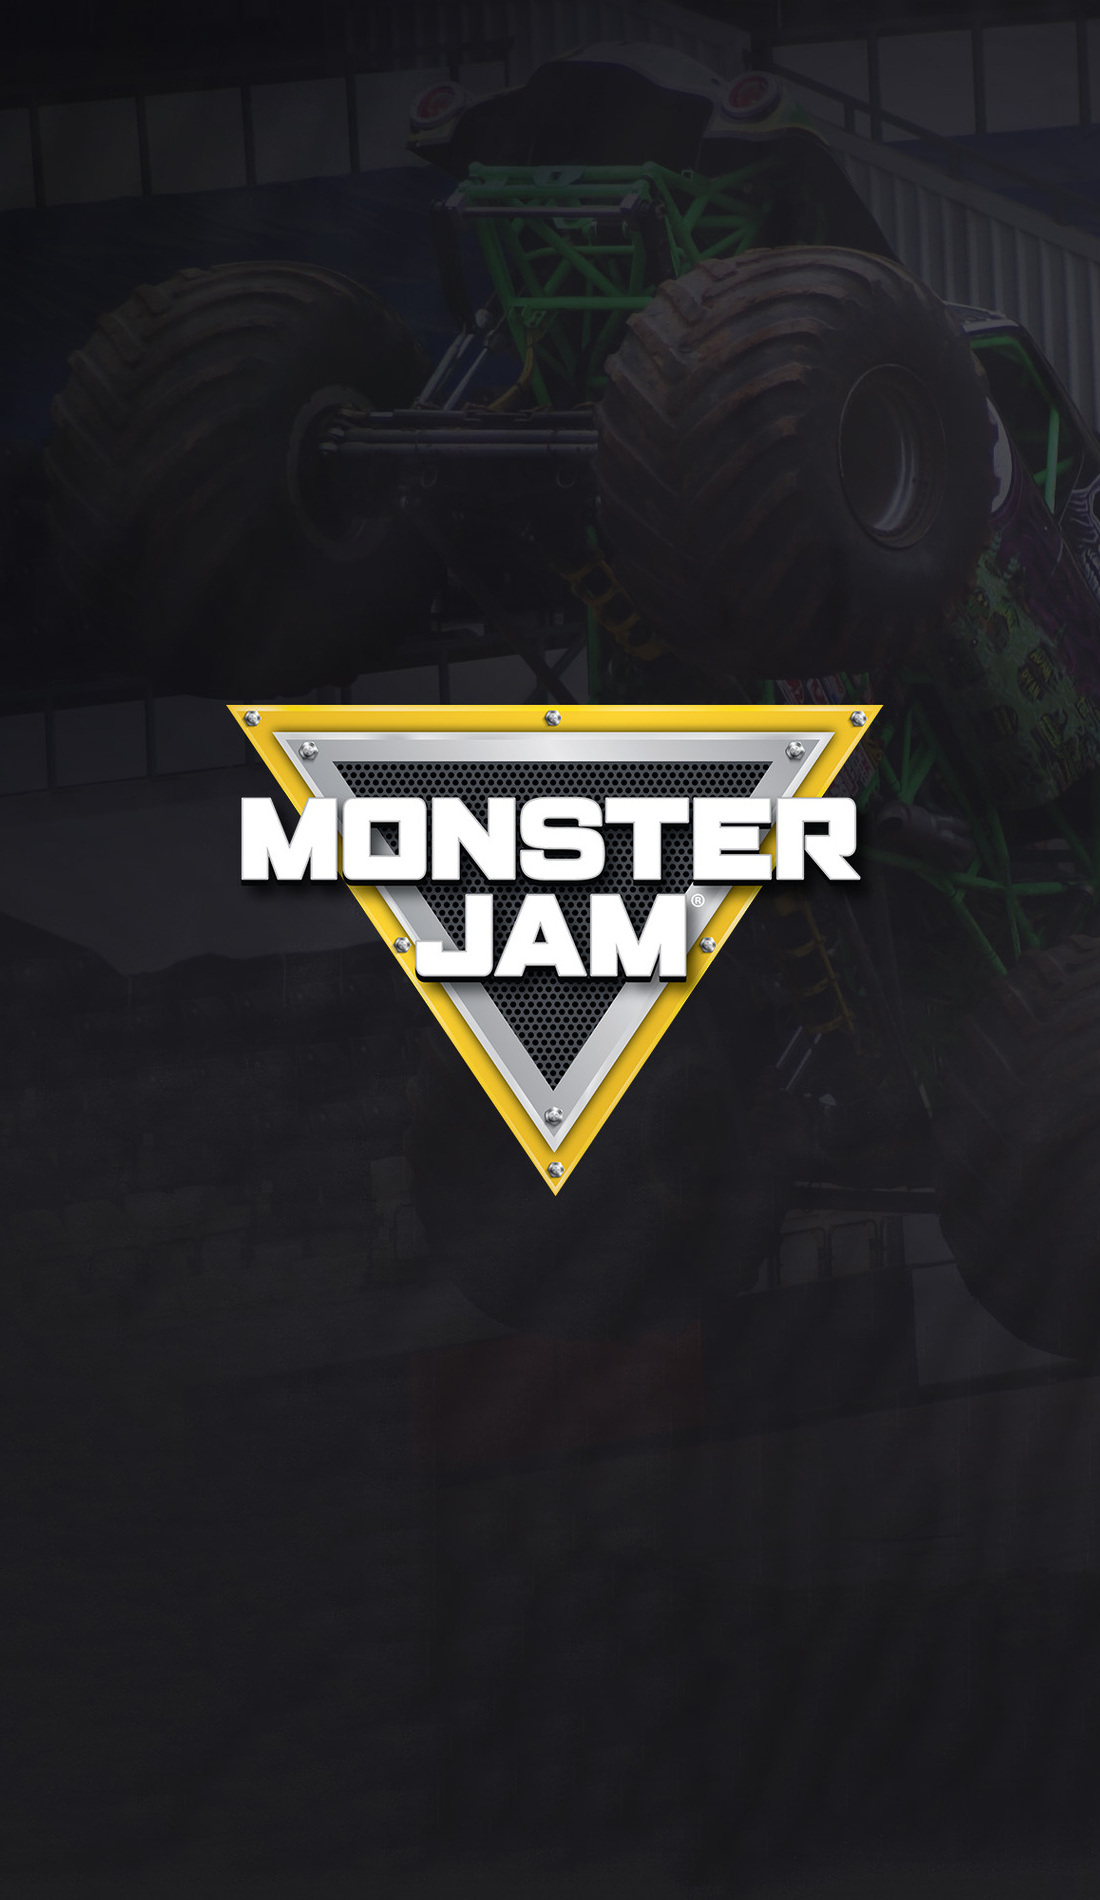 A Monster Jam live event